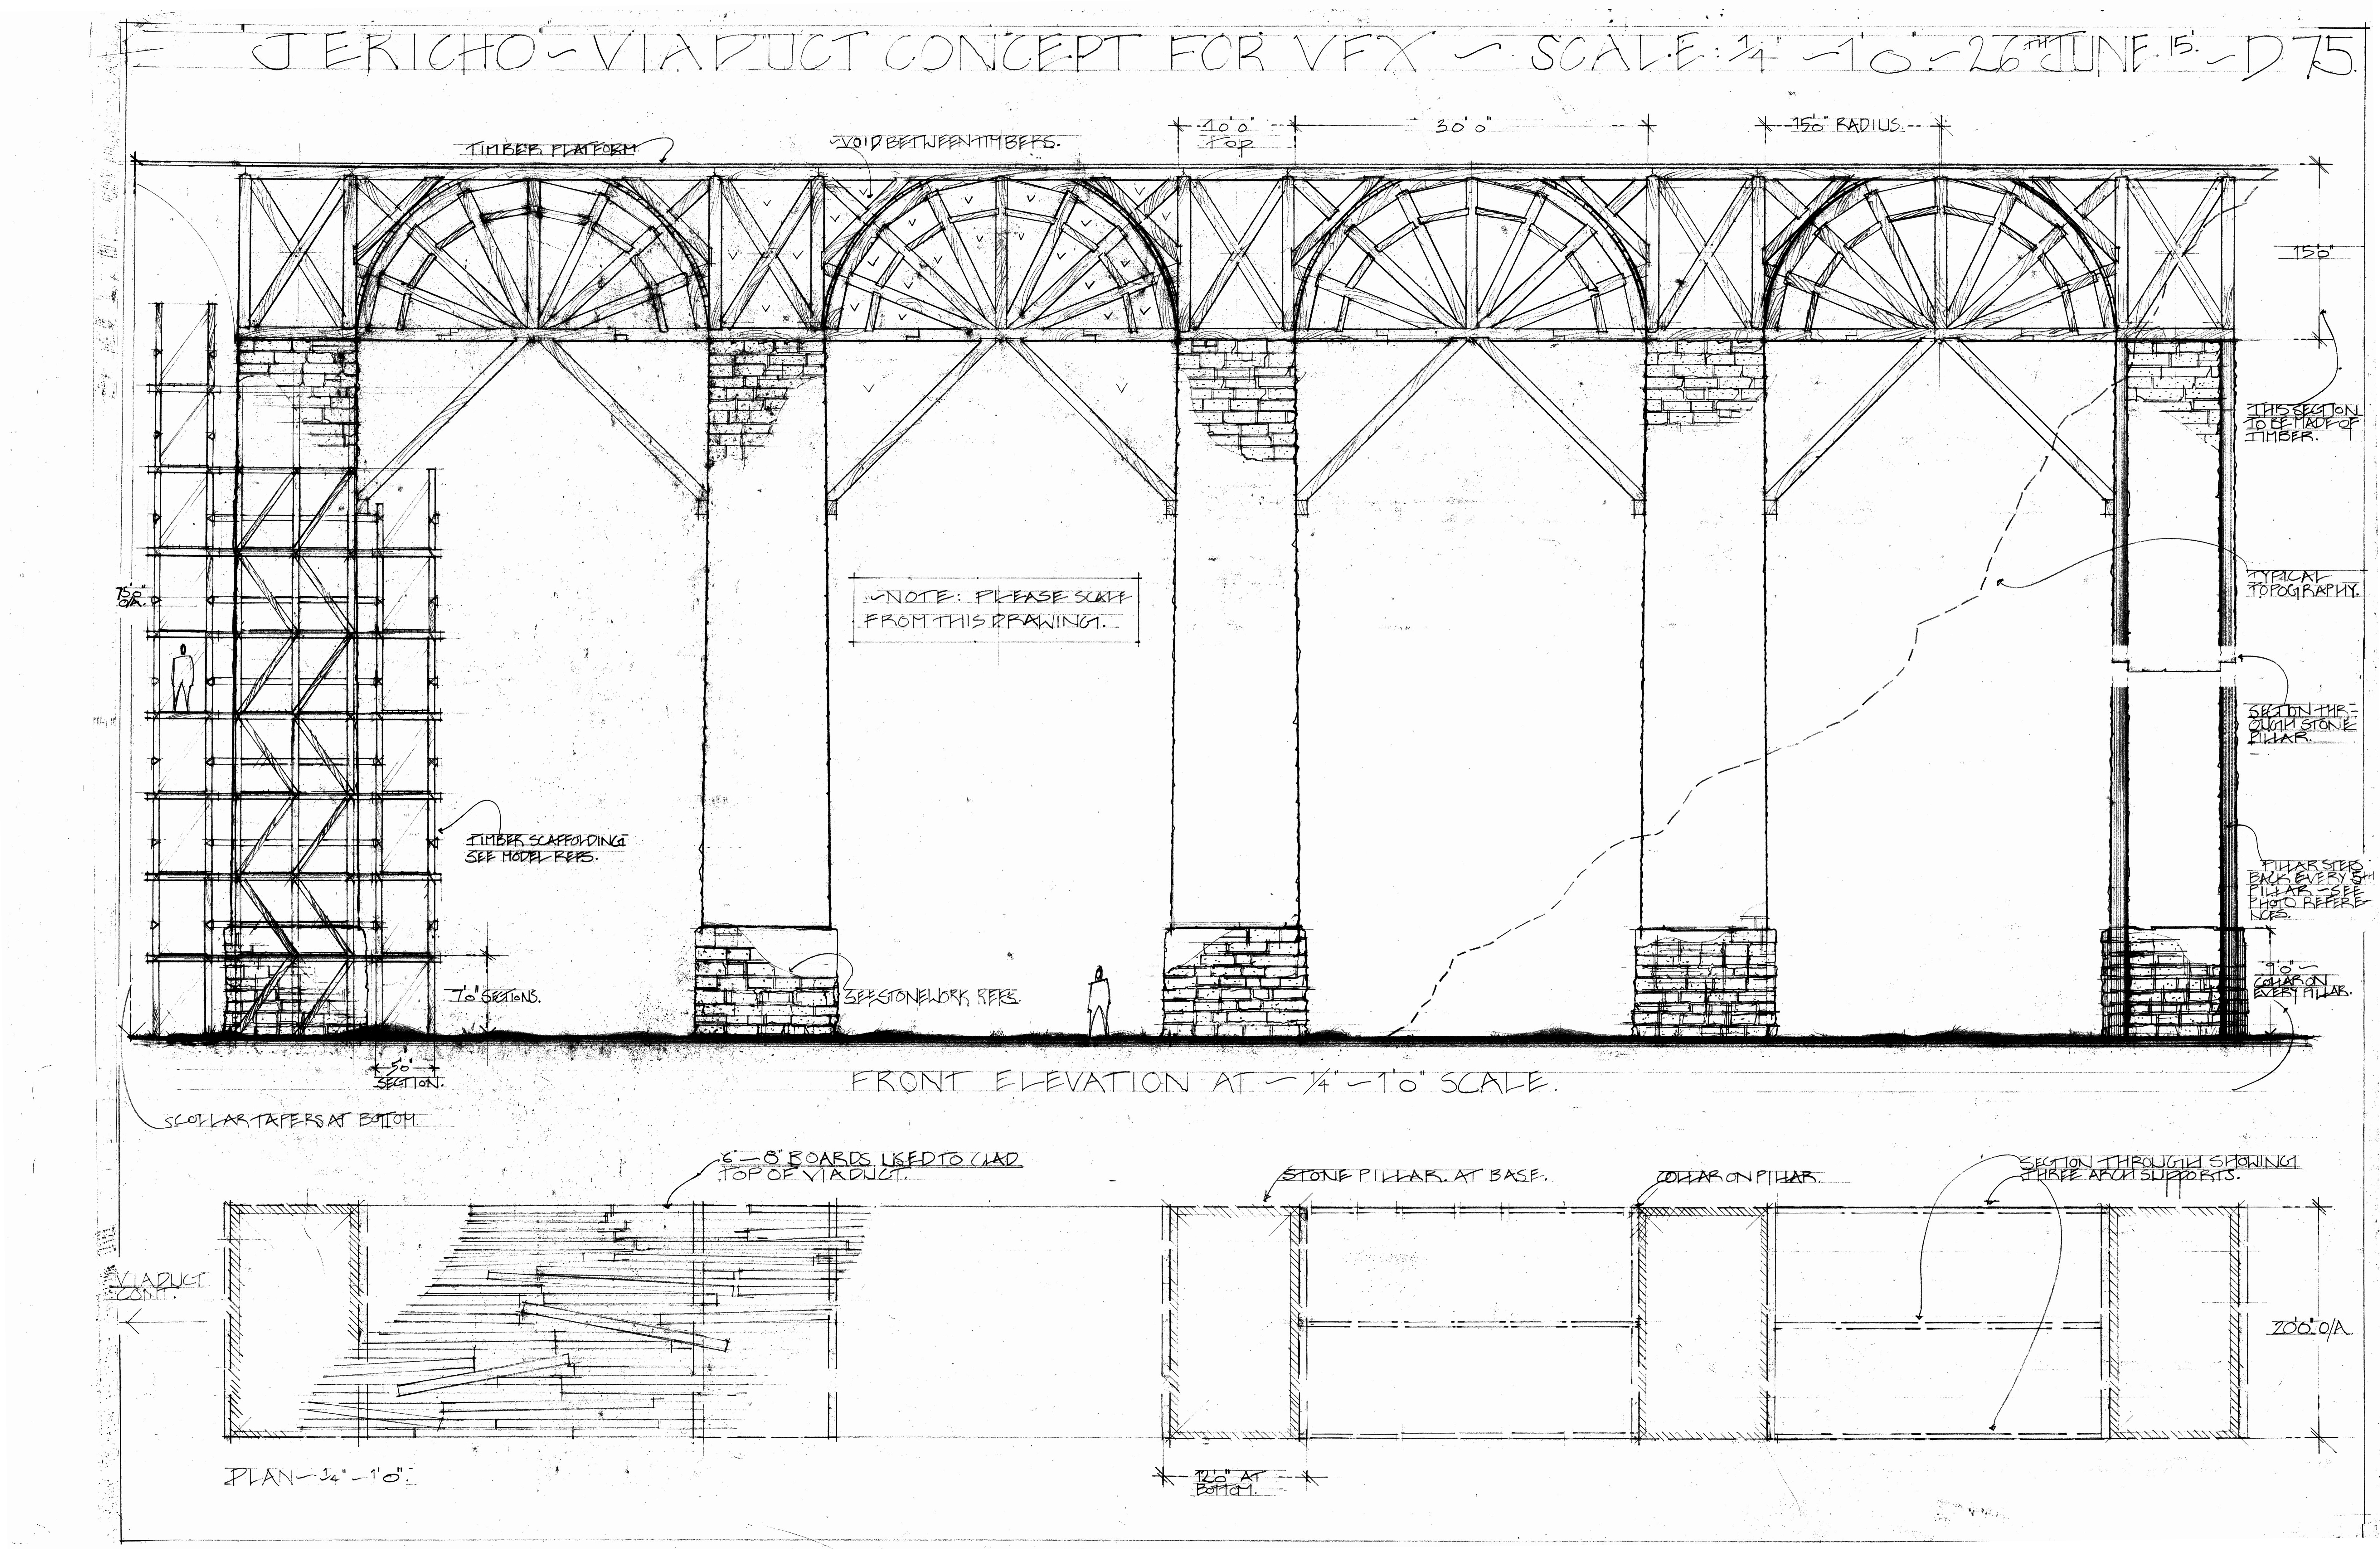 Scaled Viaduct for VFX